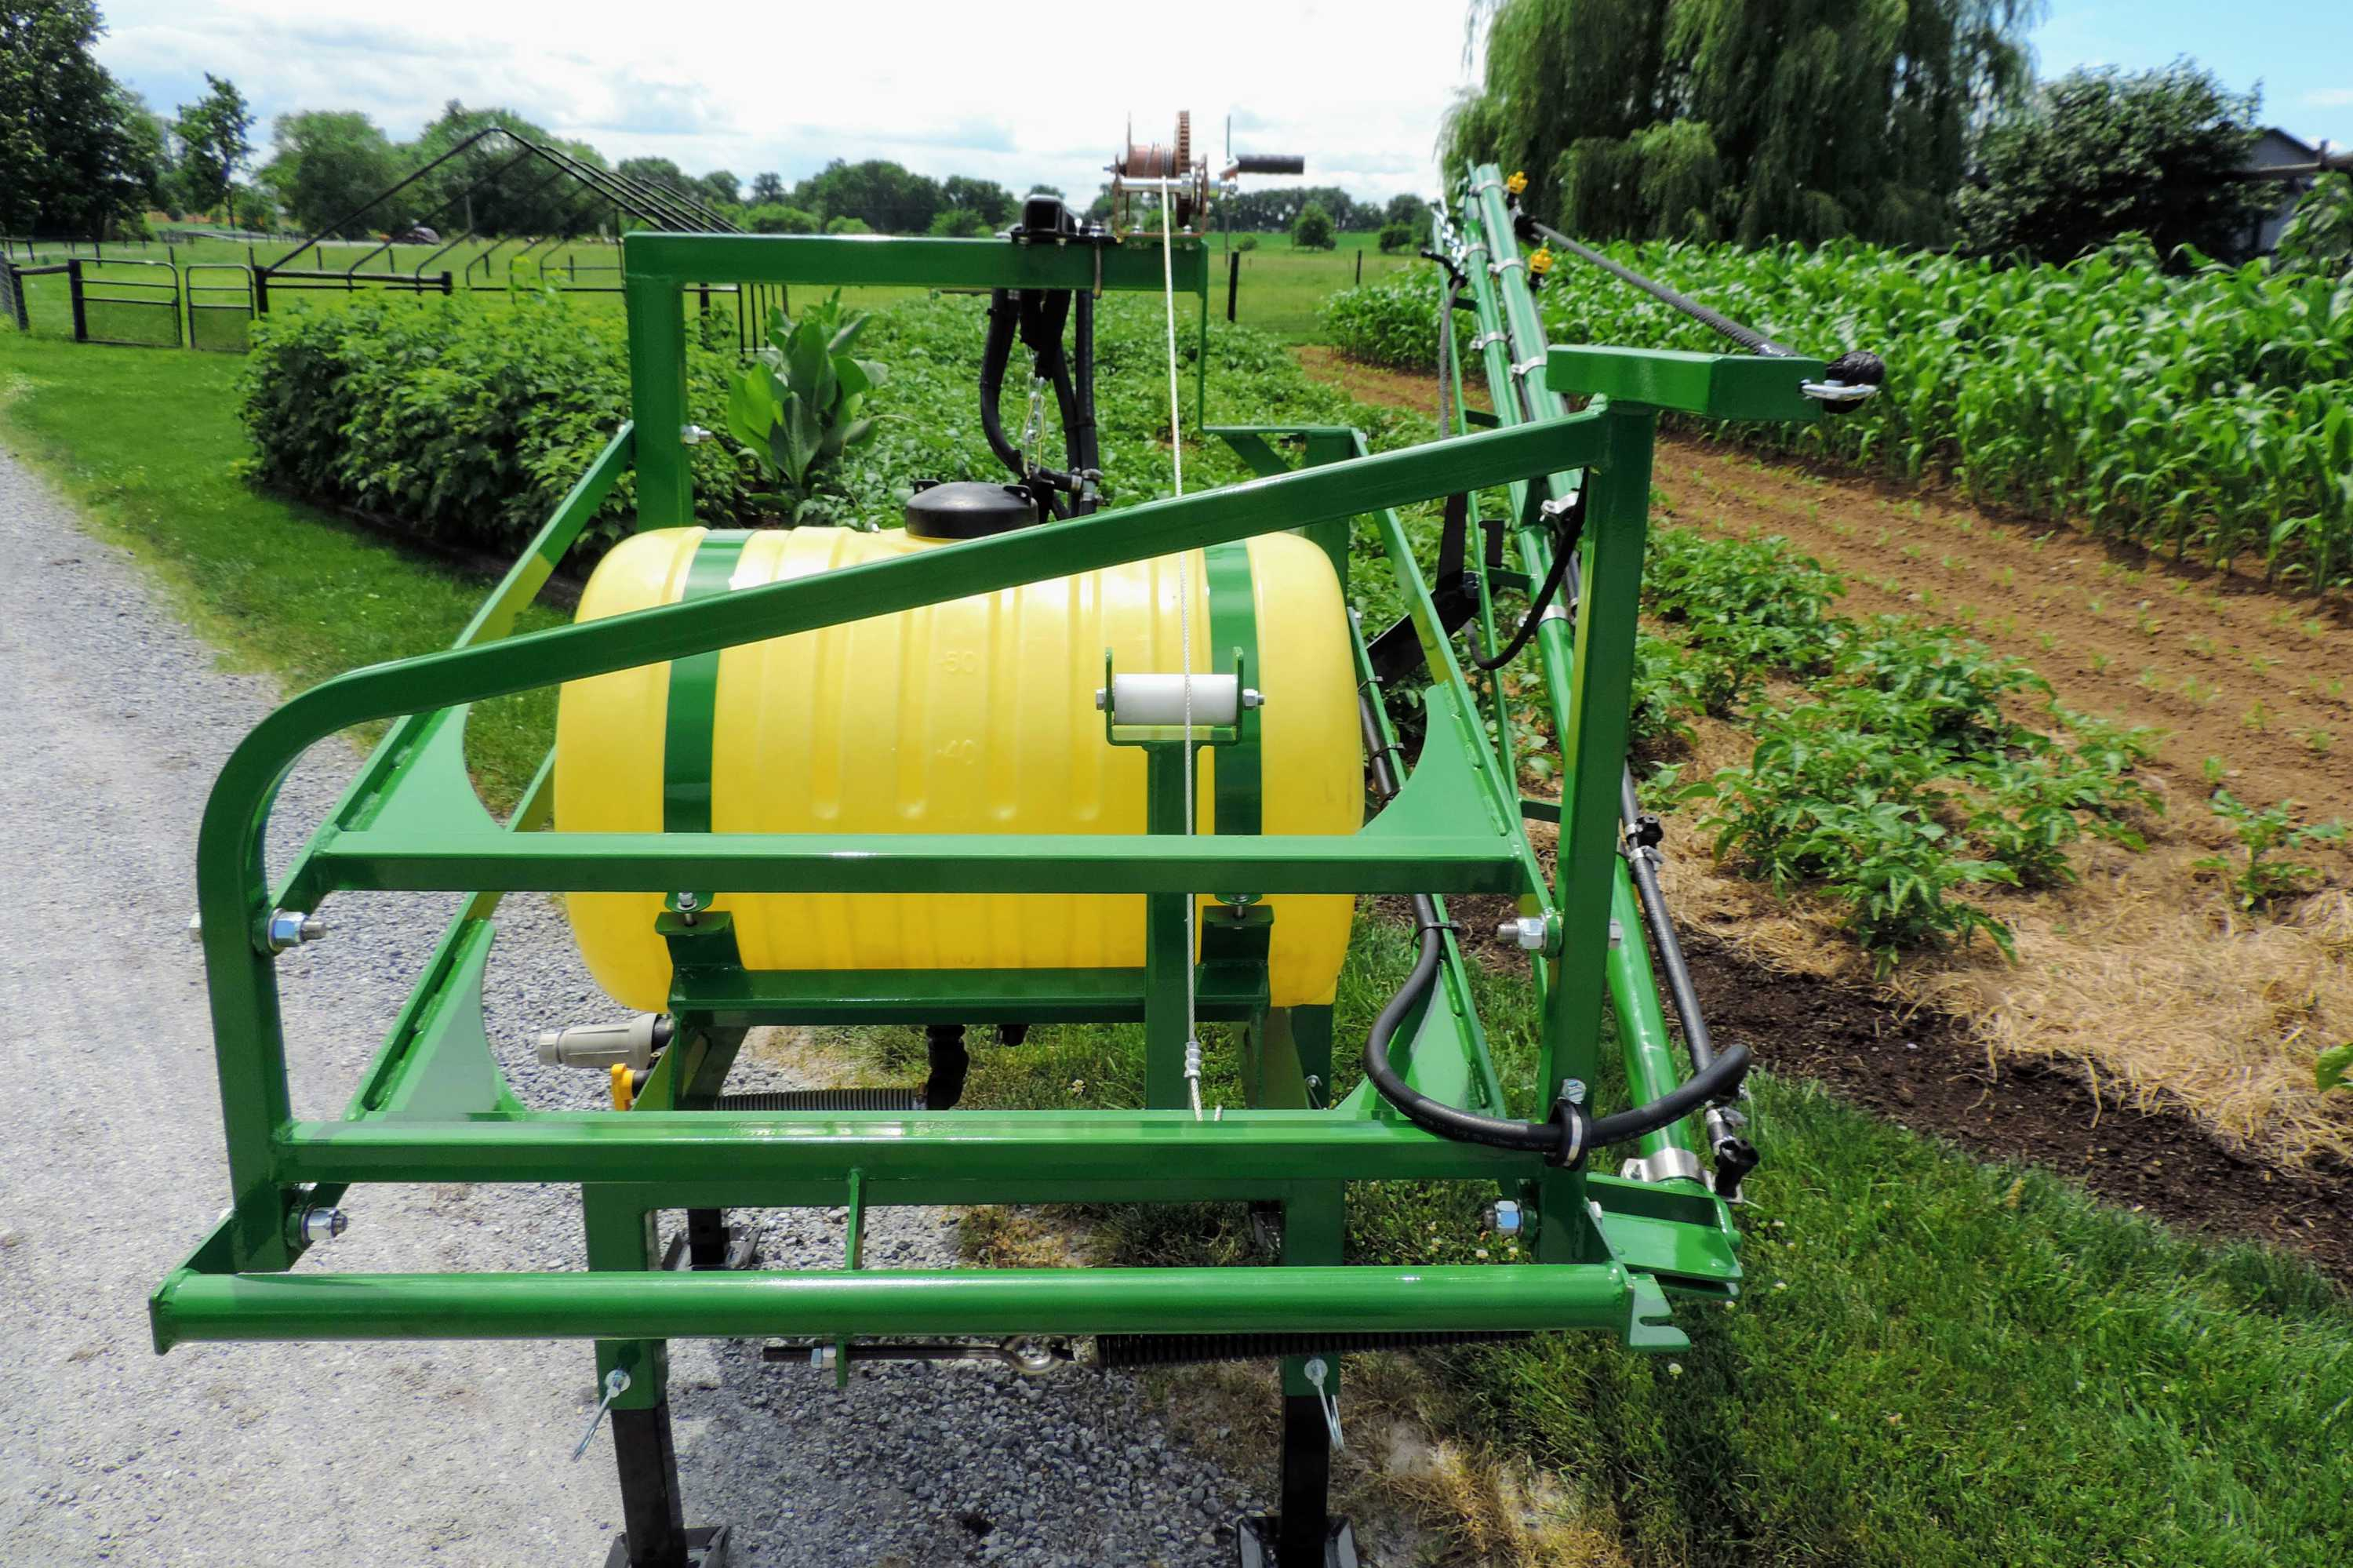 55 gallon 3-point hitch sprayer with mounted diaphragm pump